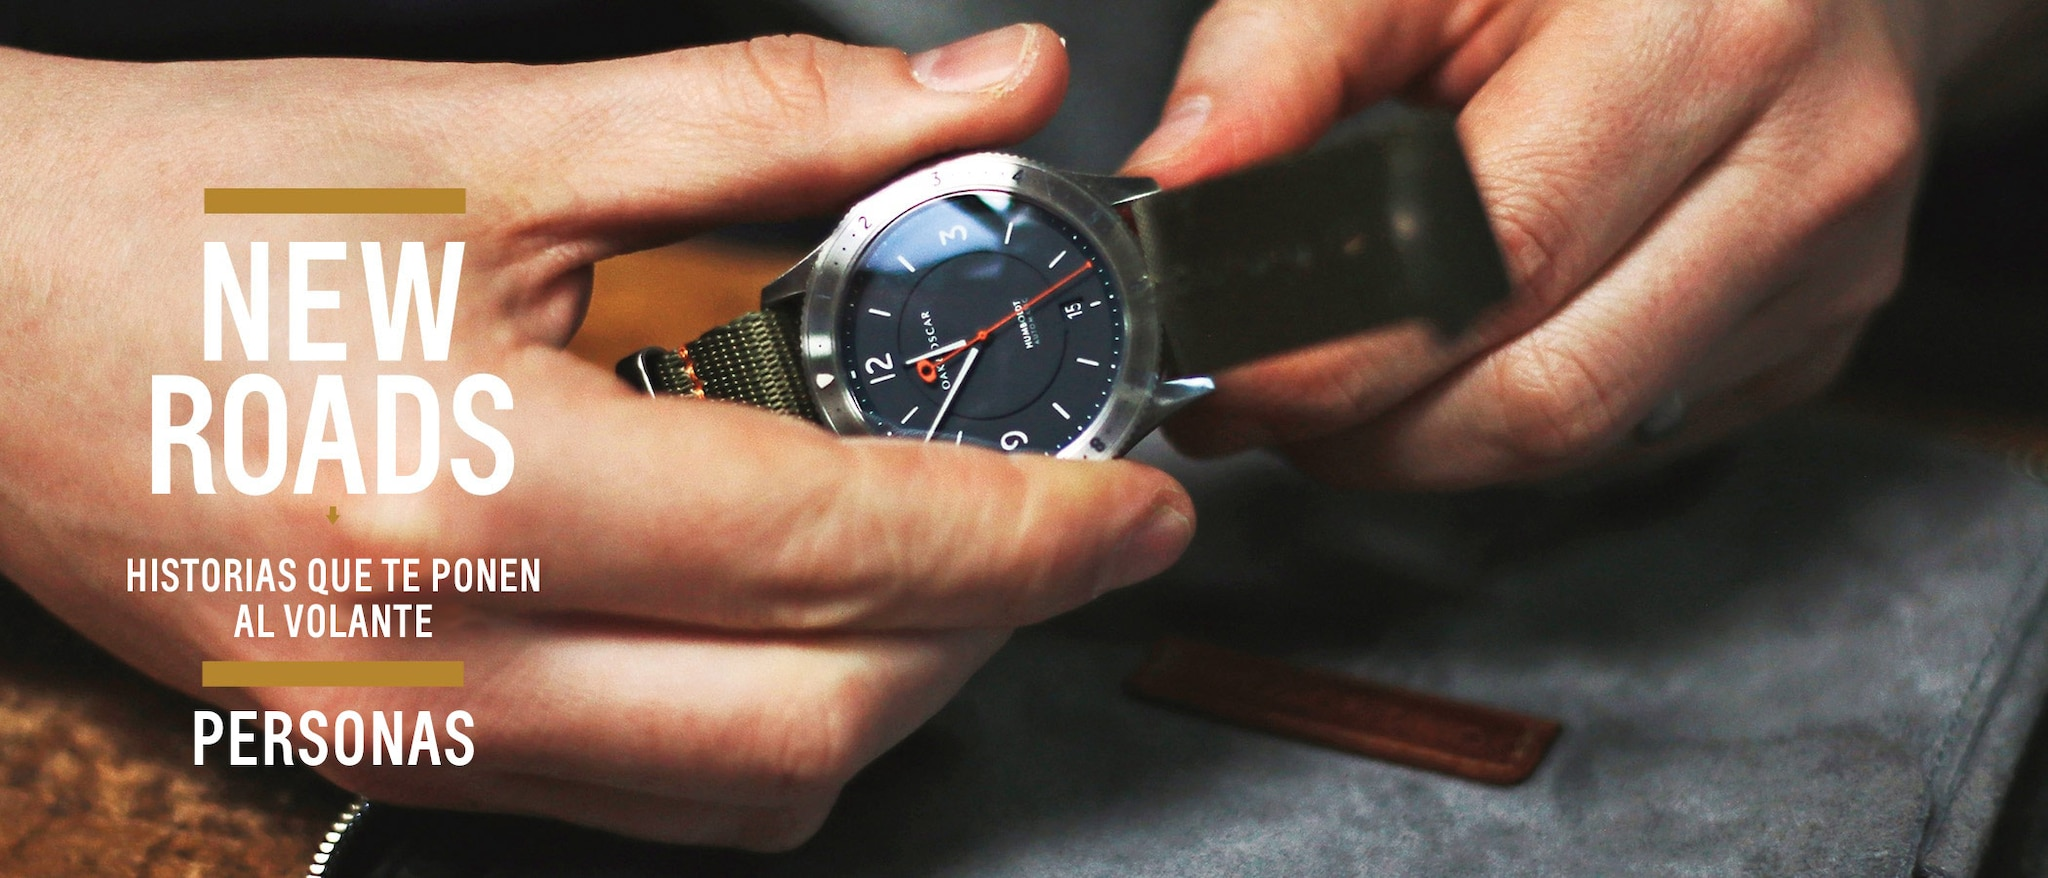 A close-up of hands holding a watch.